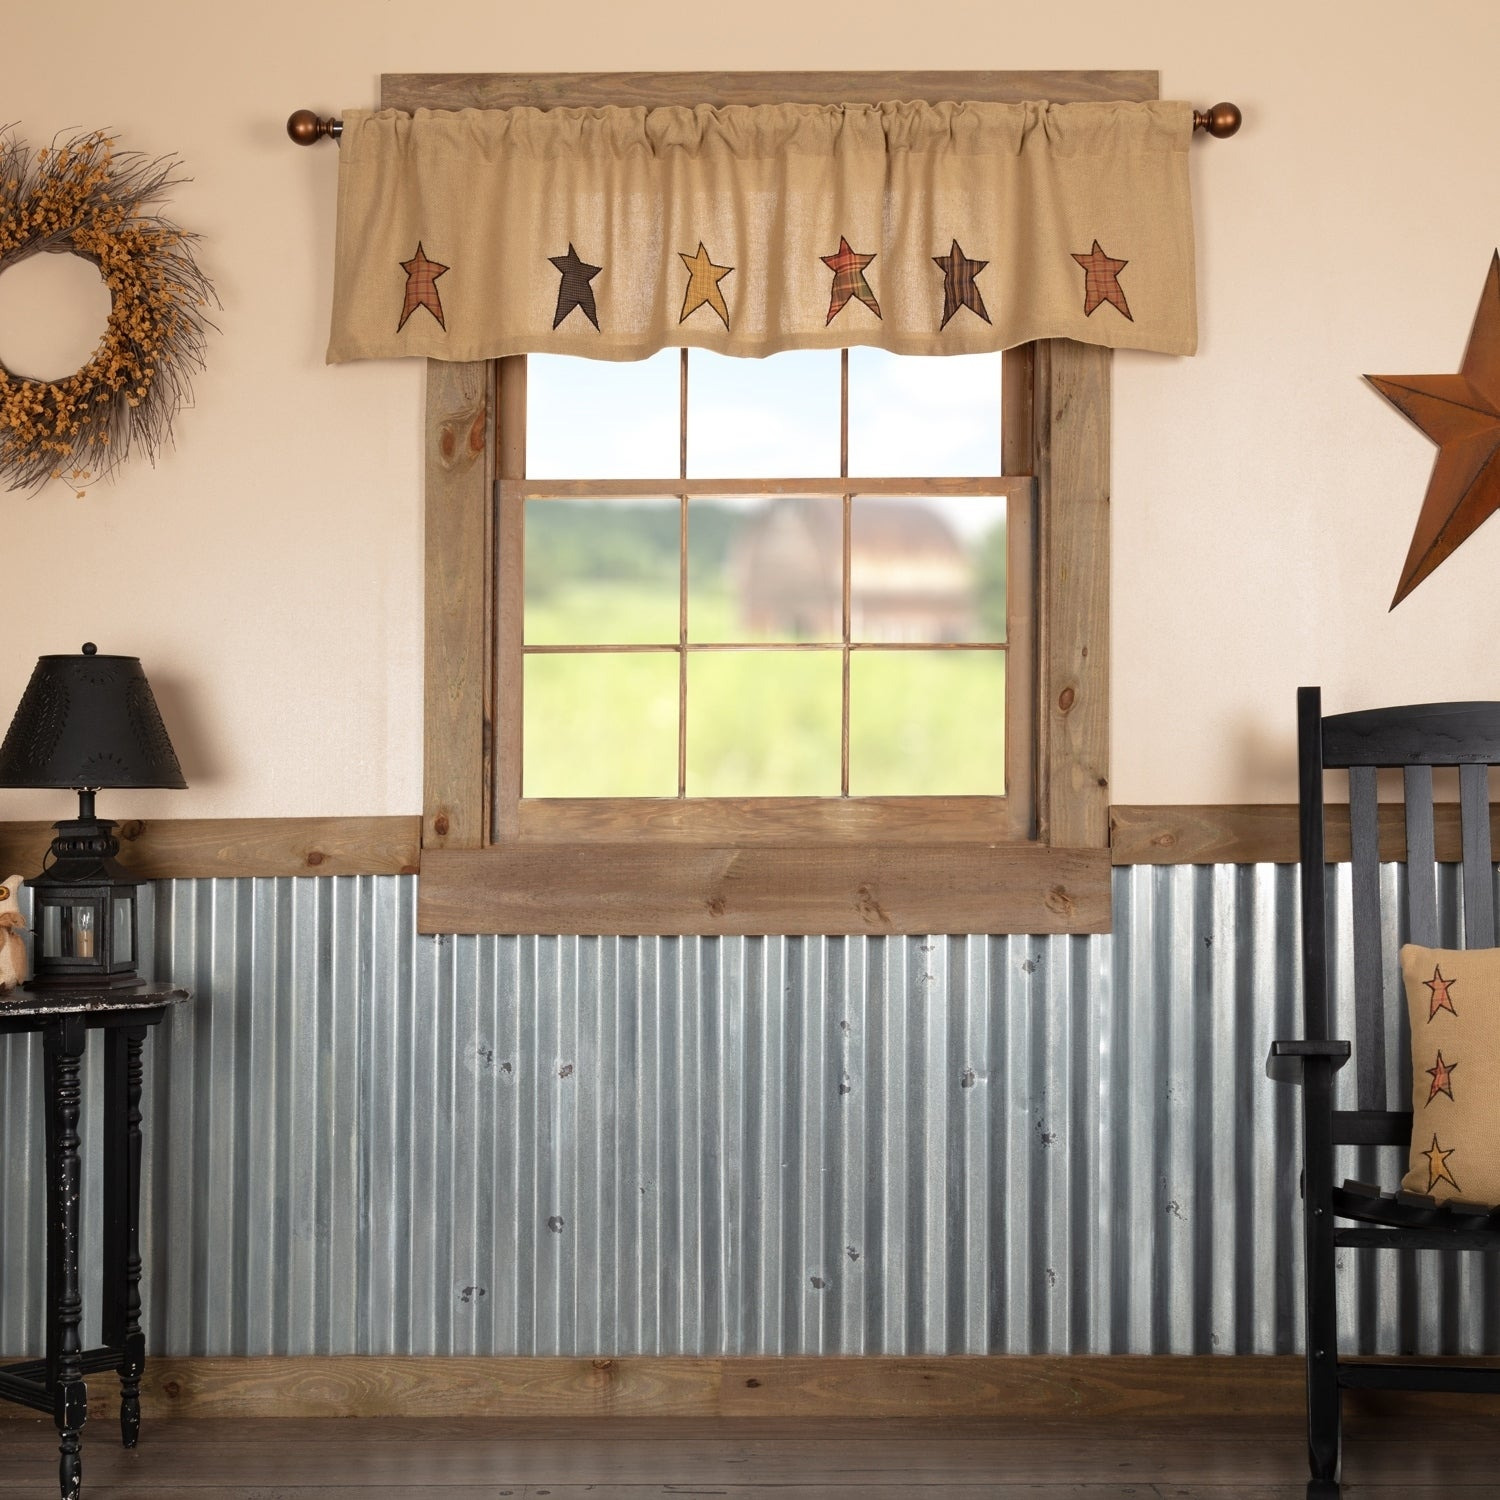 Tan Primitive Kitchen Curtains Vhc Stratton Stars Valance Rod Pocket Cotton Star Appliqued Cotton Burlap – Valance 16x72 With Regard To Primitive Kitchen Curtains (Gallery 4 of 20)